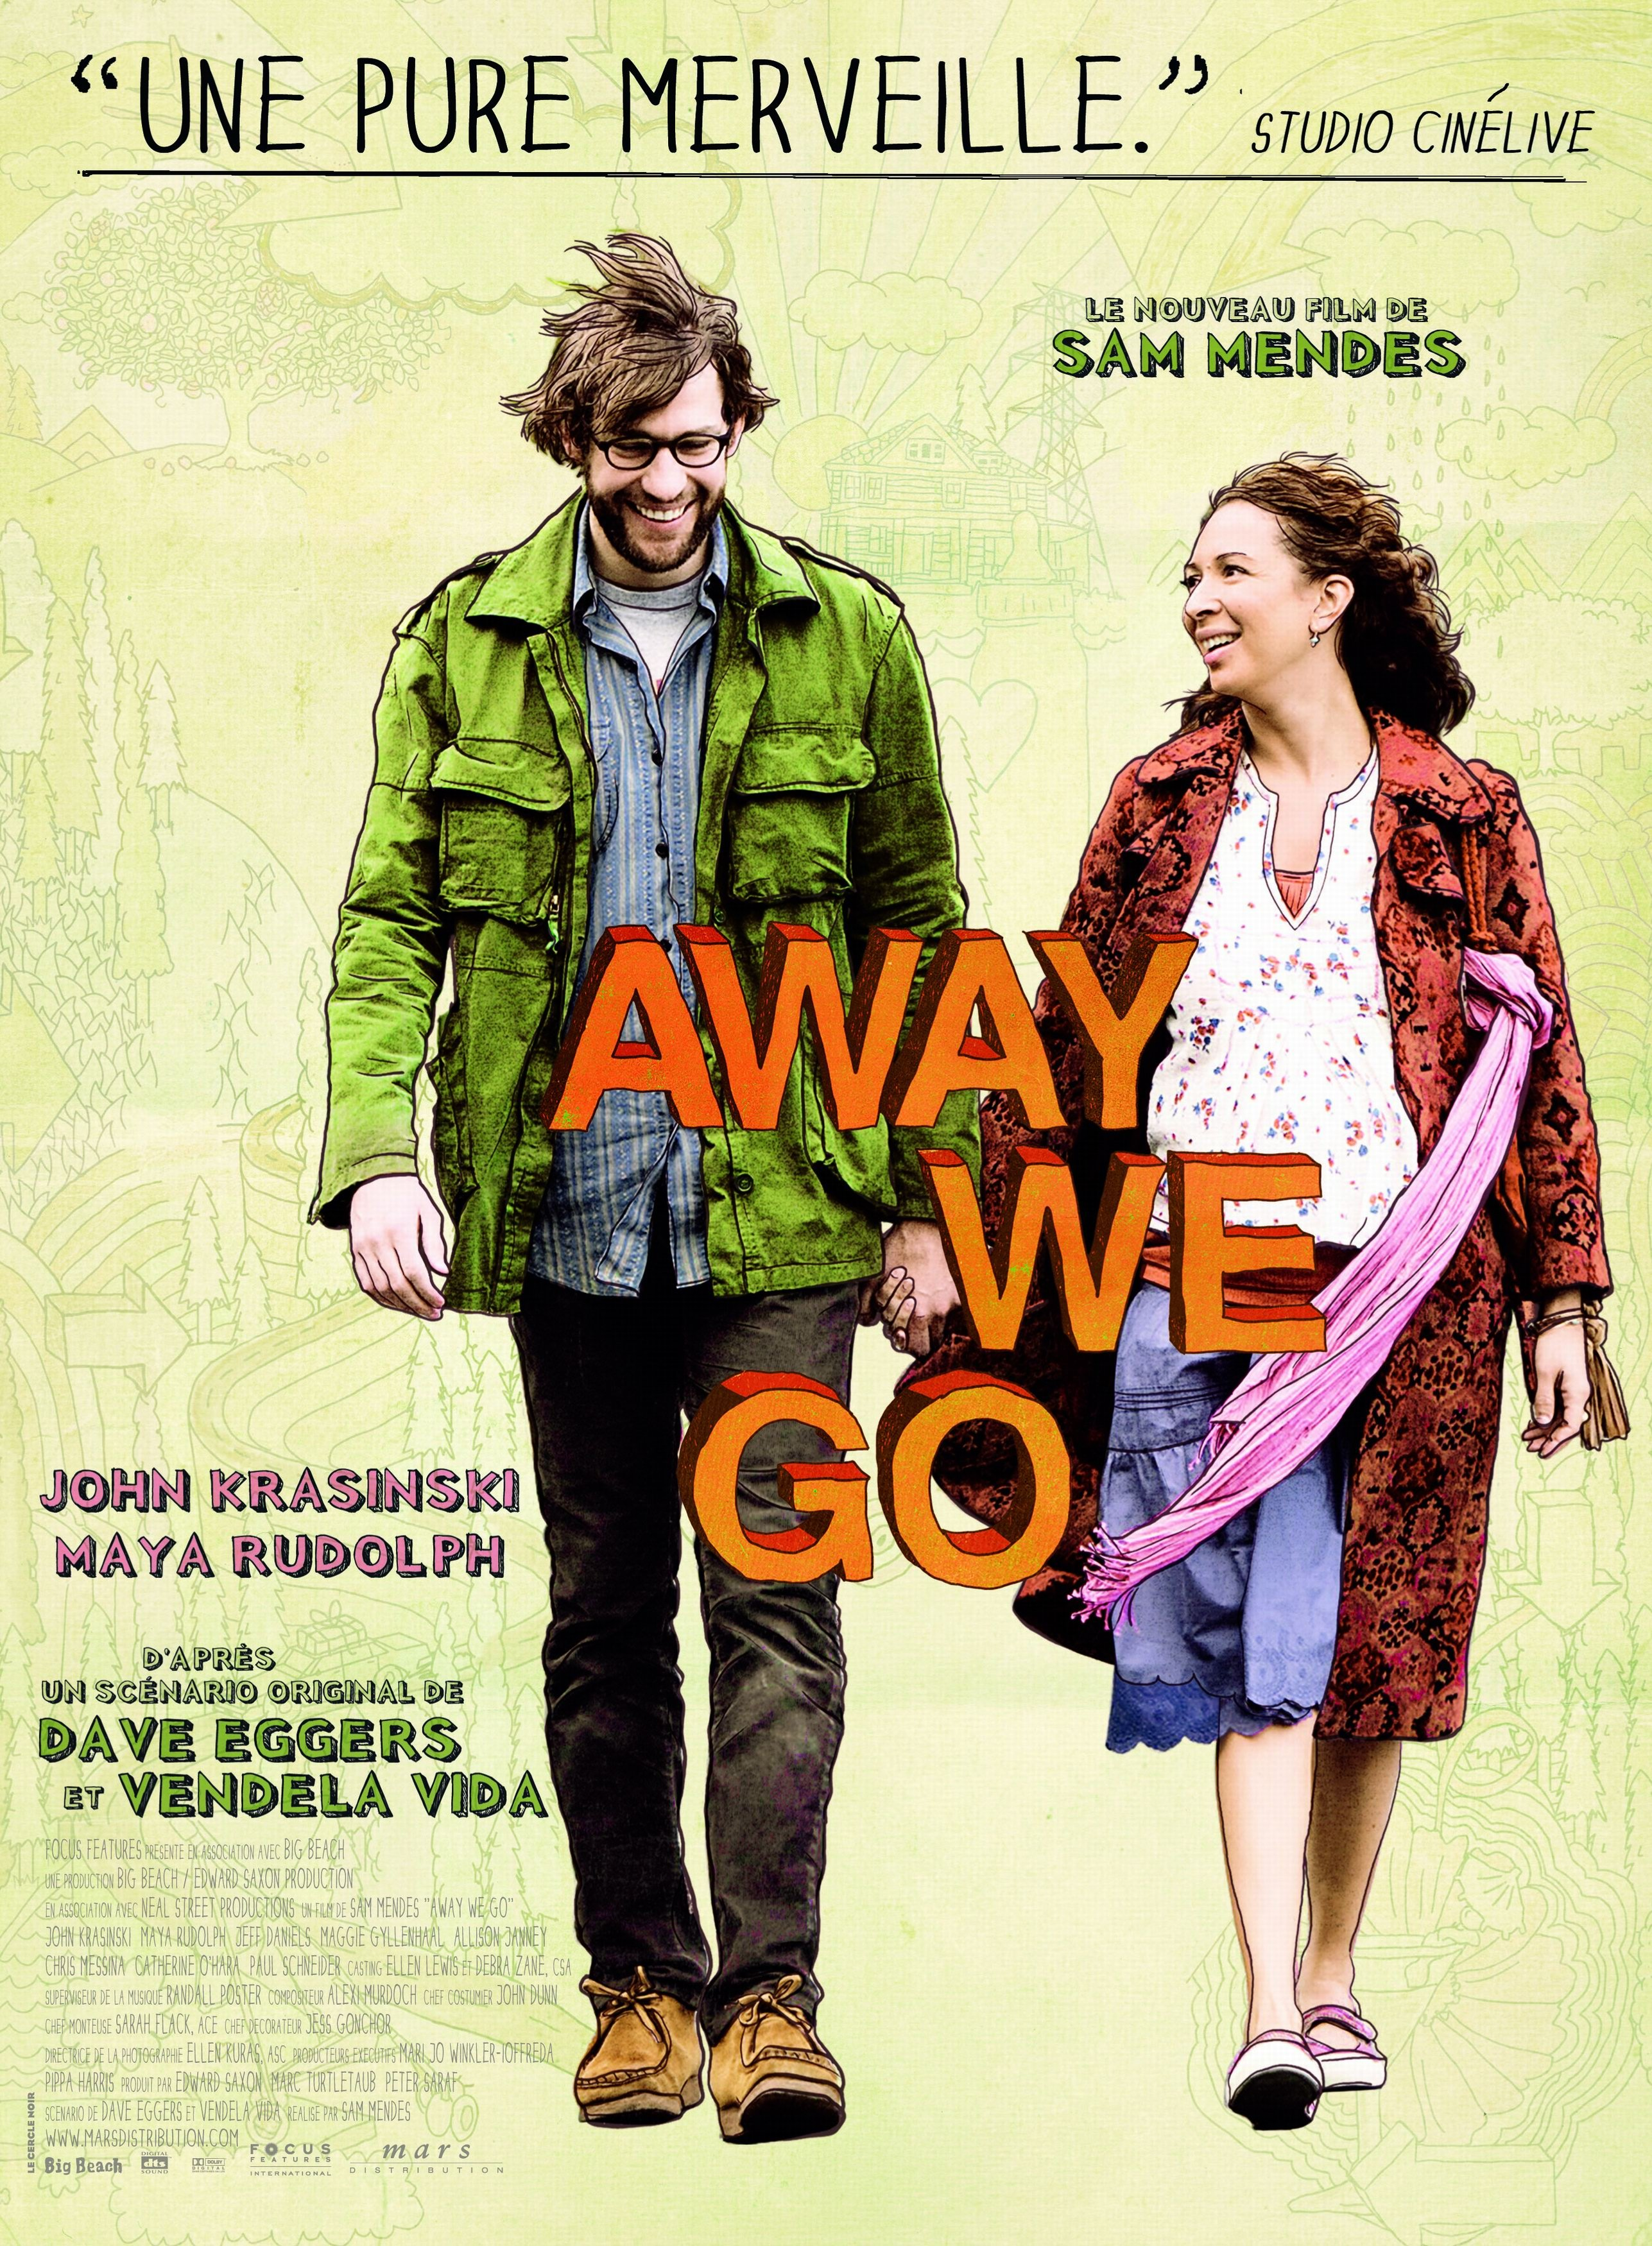 Away We Go movies in Bulgaria